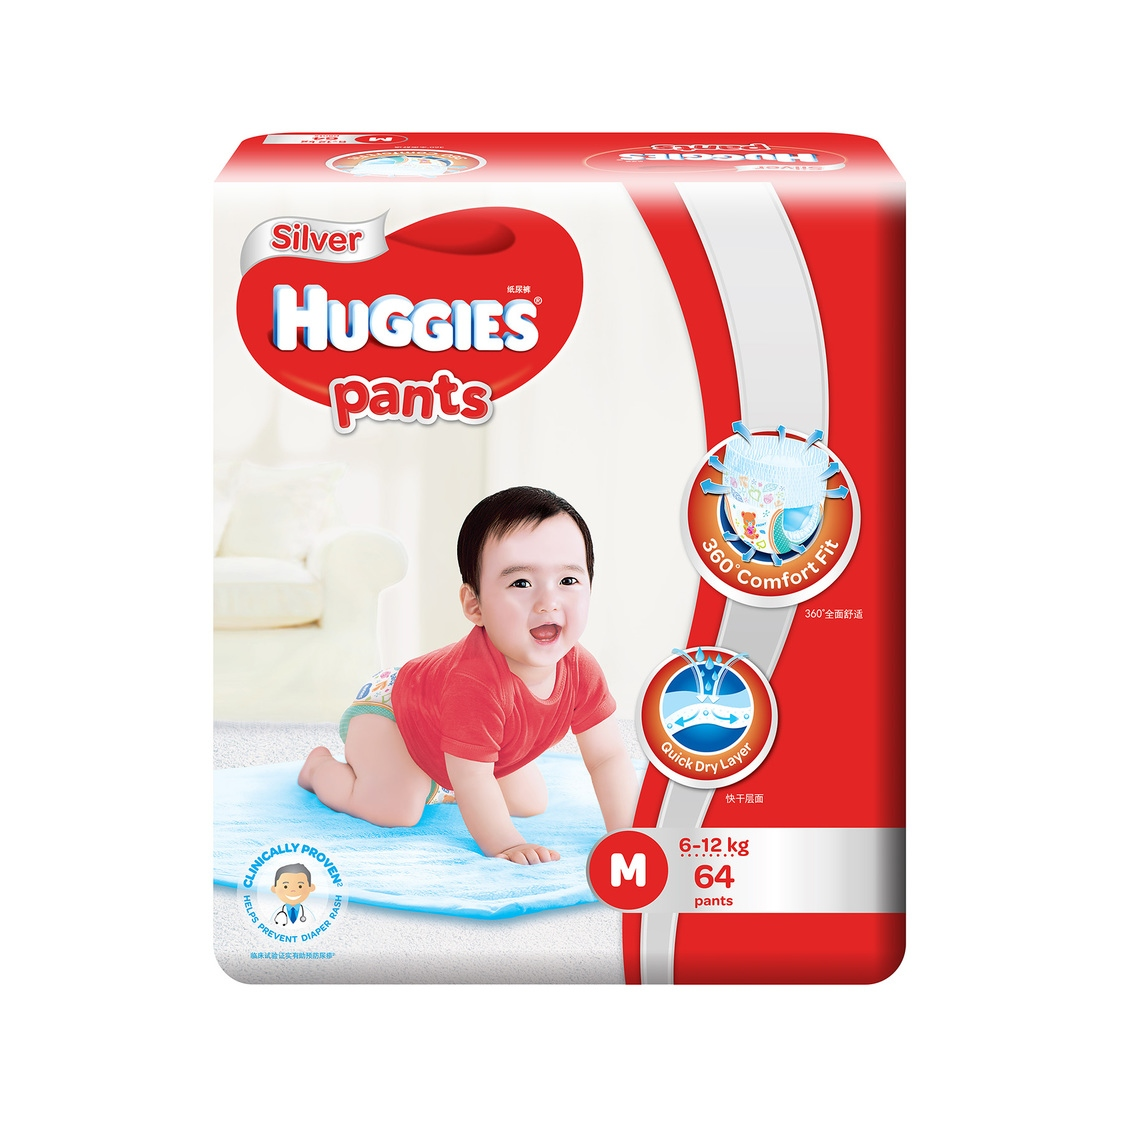 Huggies Silver Pants M